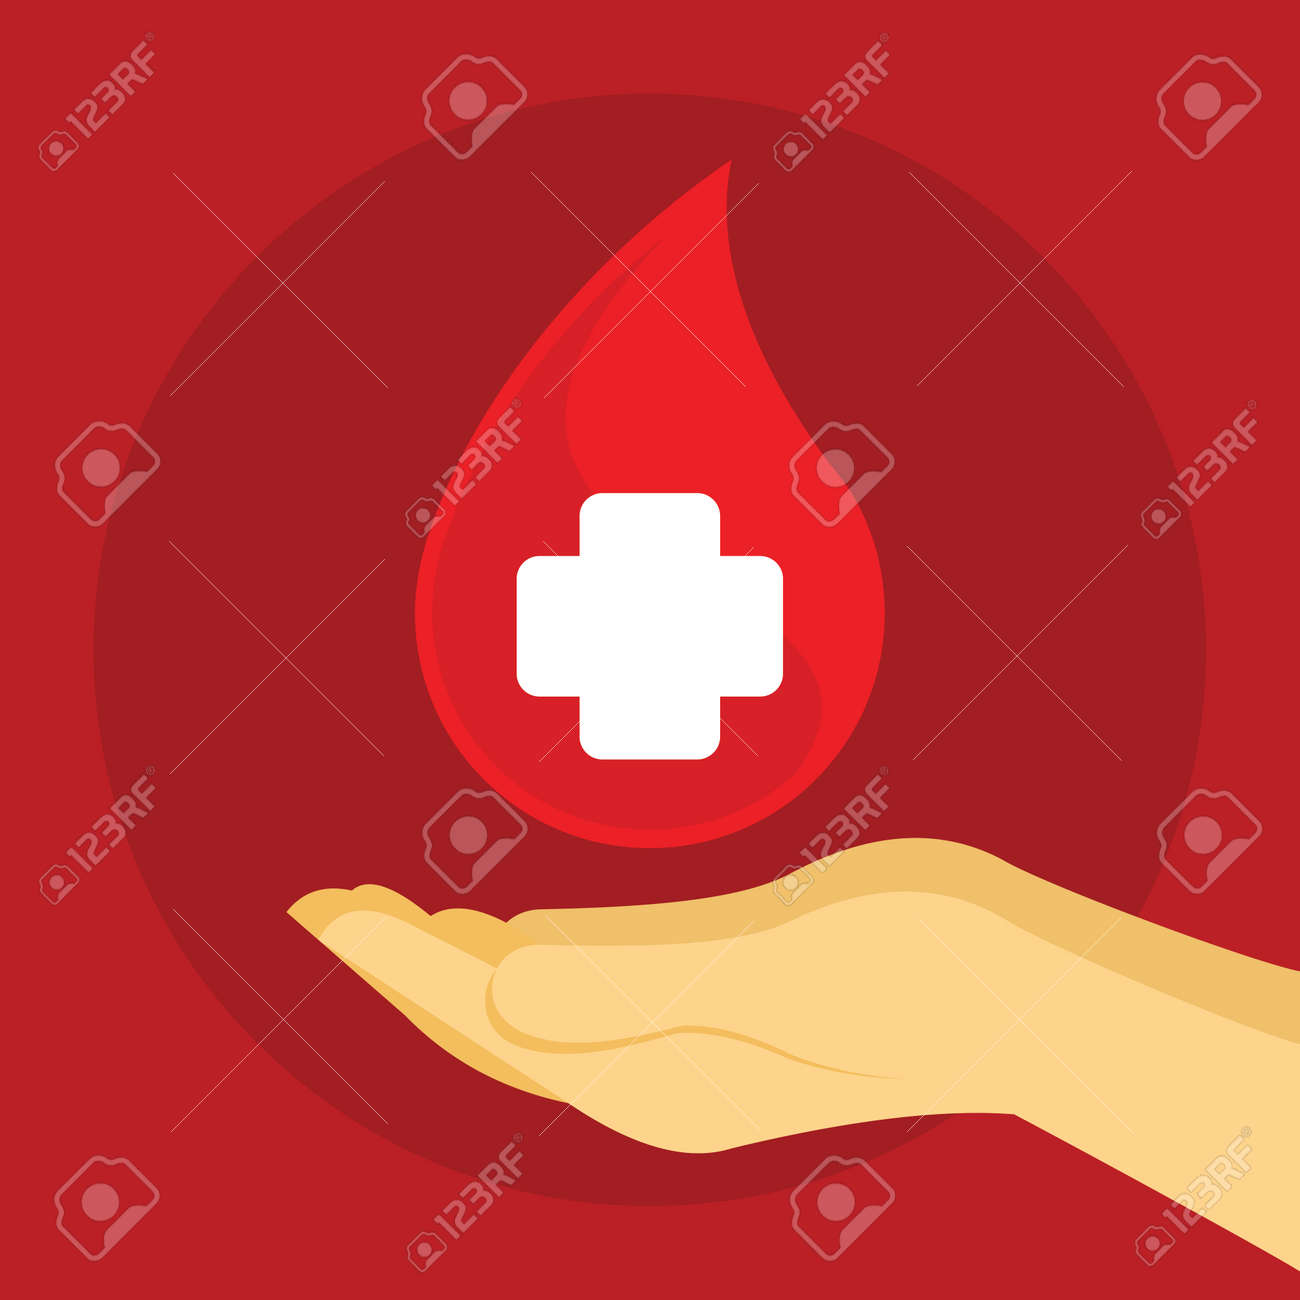 donate blood saves lives - 69355705